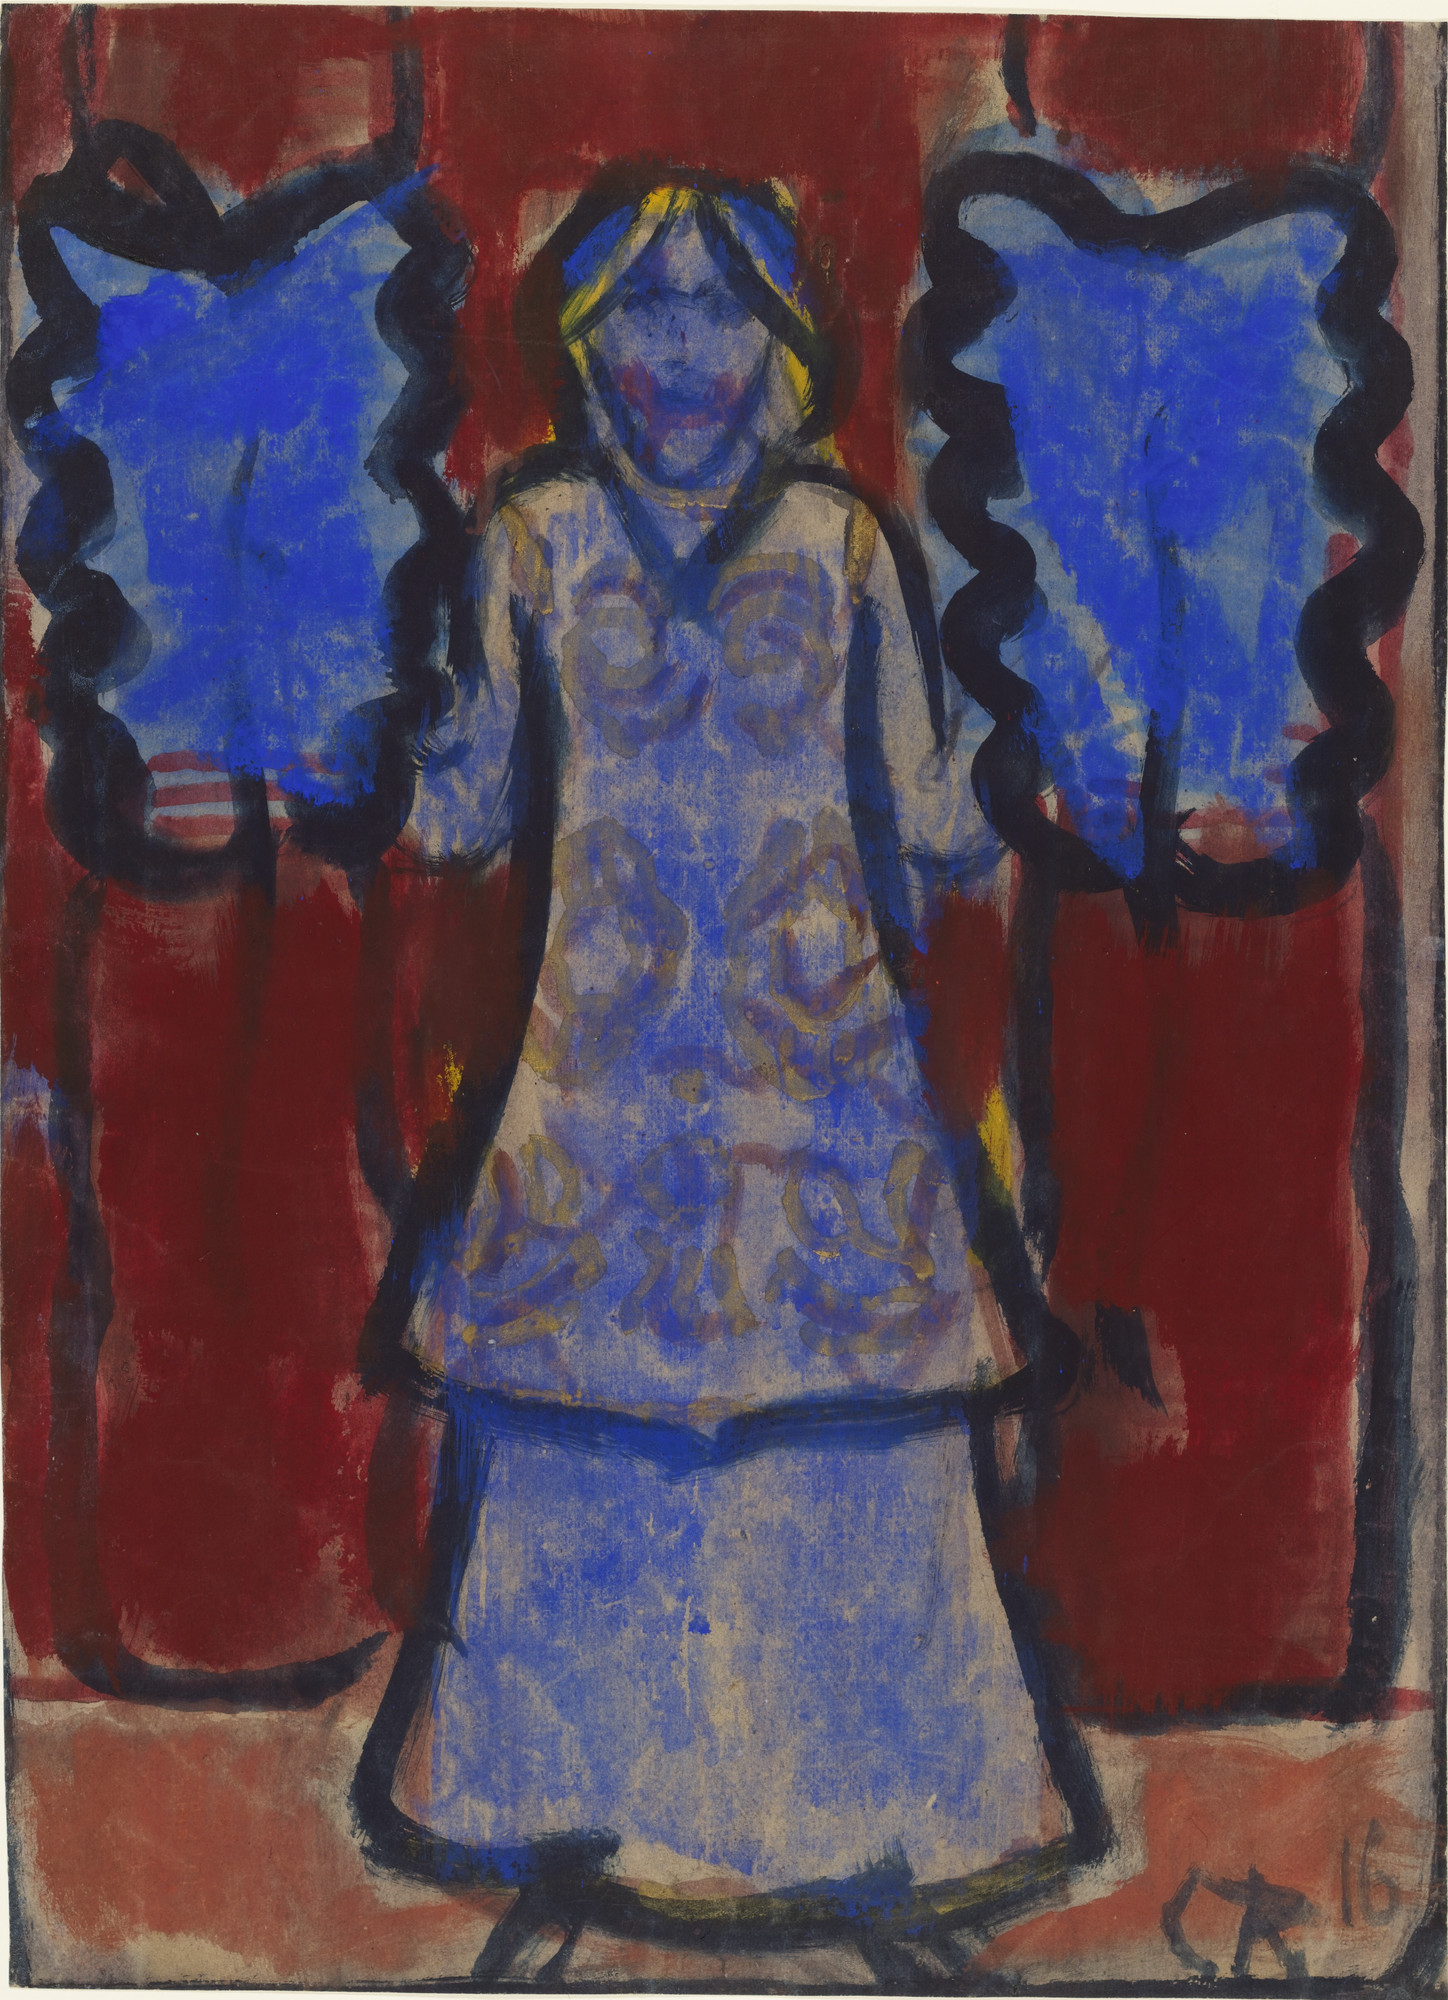 Christian Rohlfs. Blue Fan Dancer. 1916